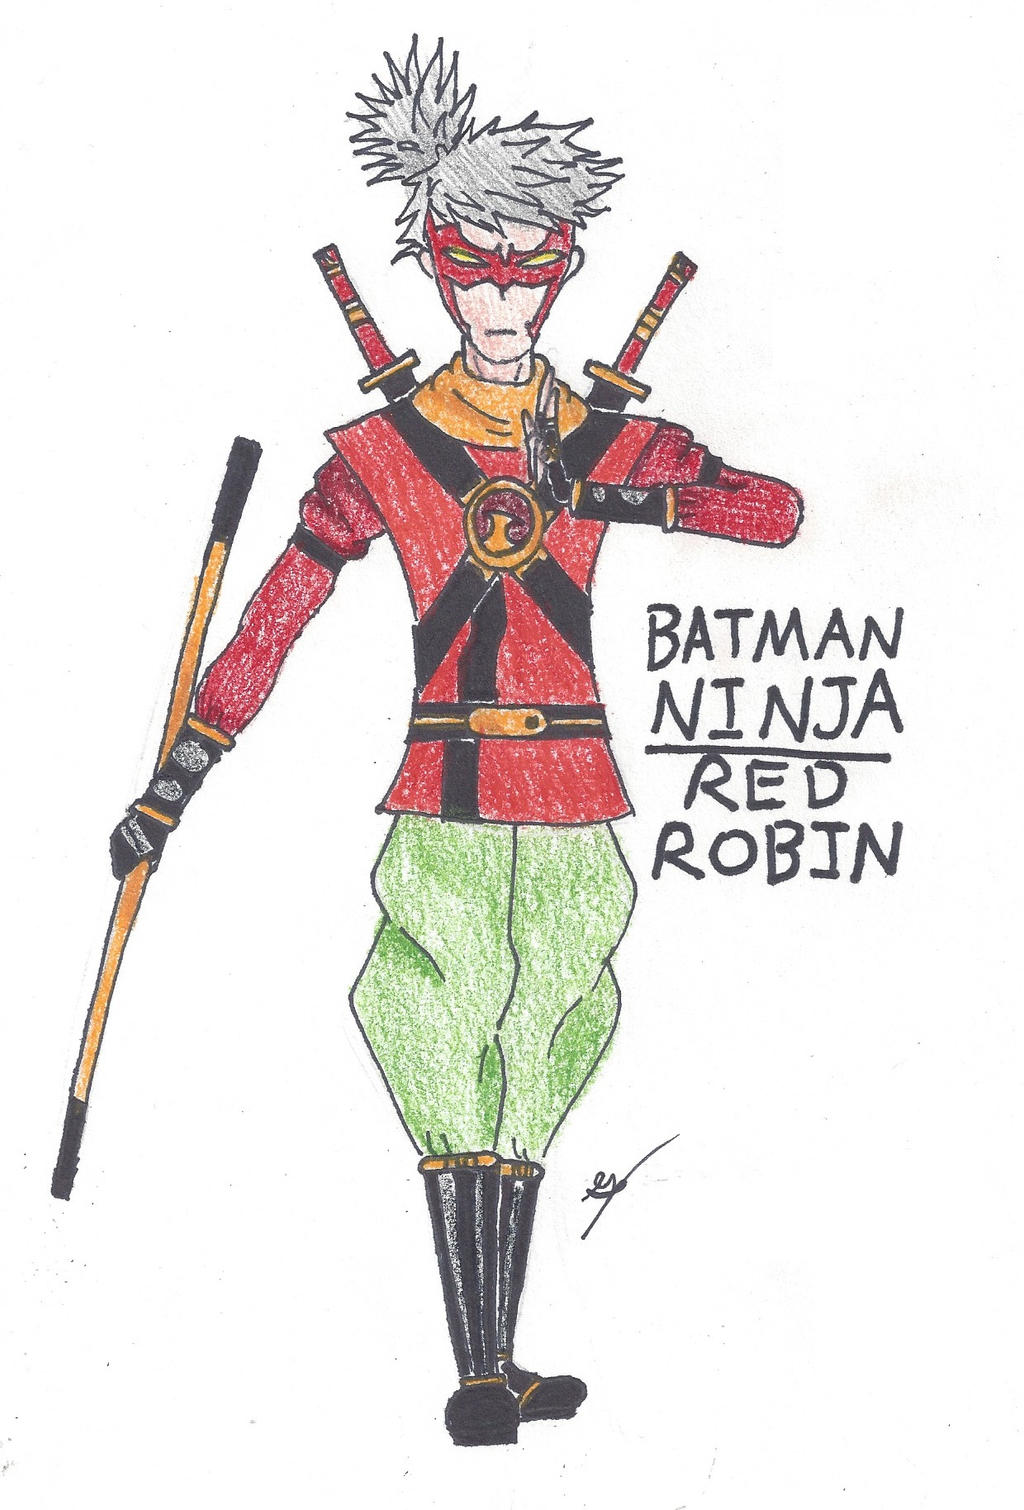 Batman Ninja Red Robin By Shadowredrobin123 On Deviantart